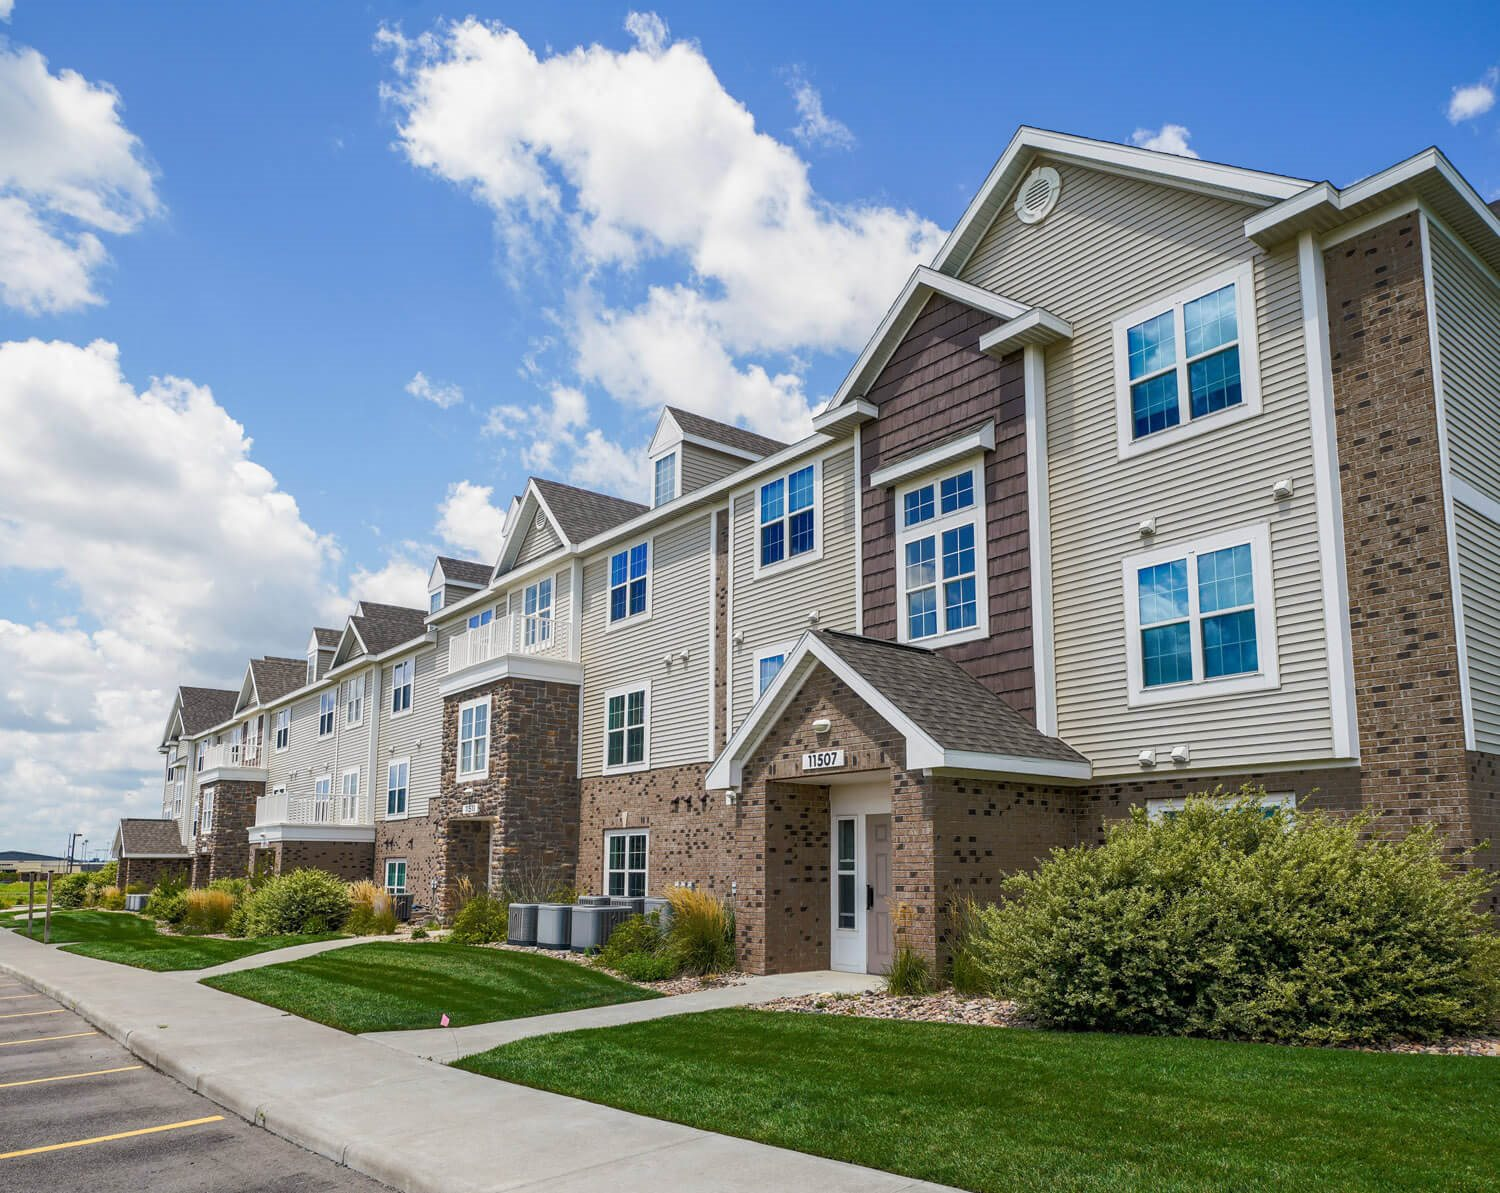 Beautiful Landscaping at Stoney Pointe Apartment Homes, 67226